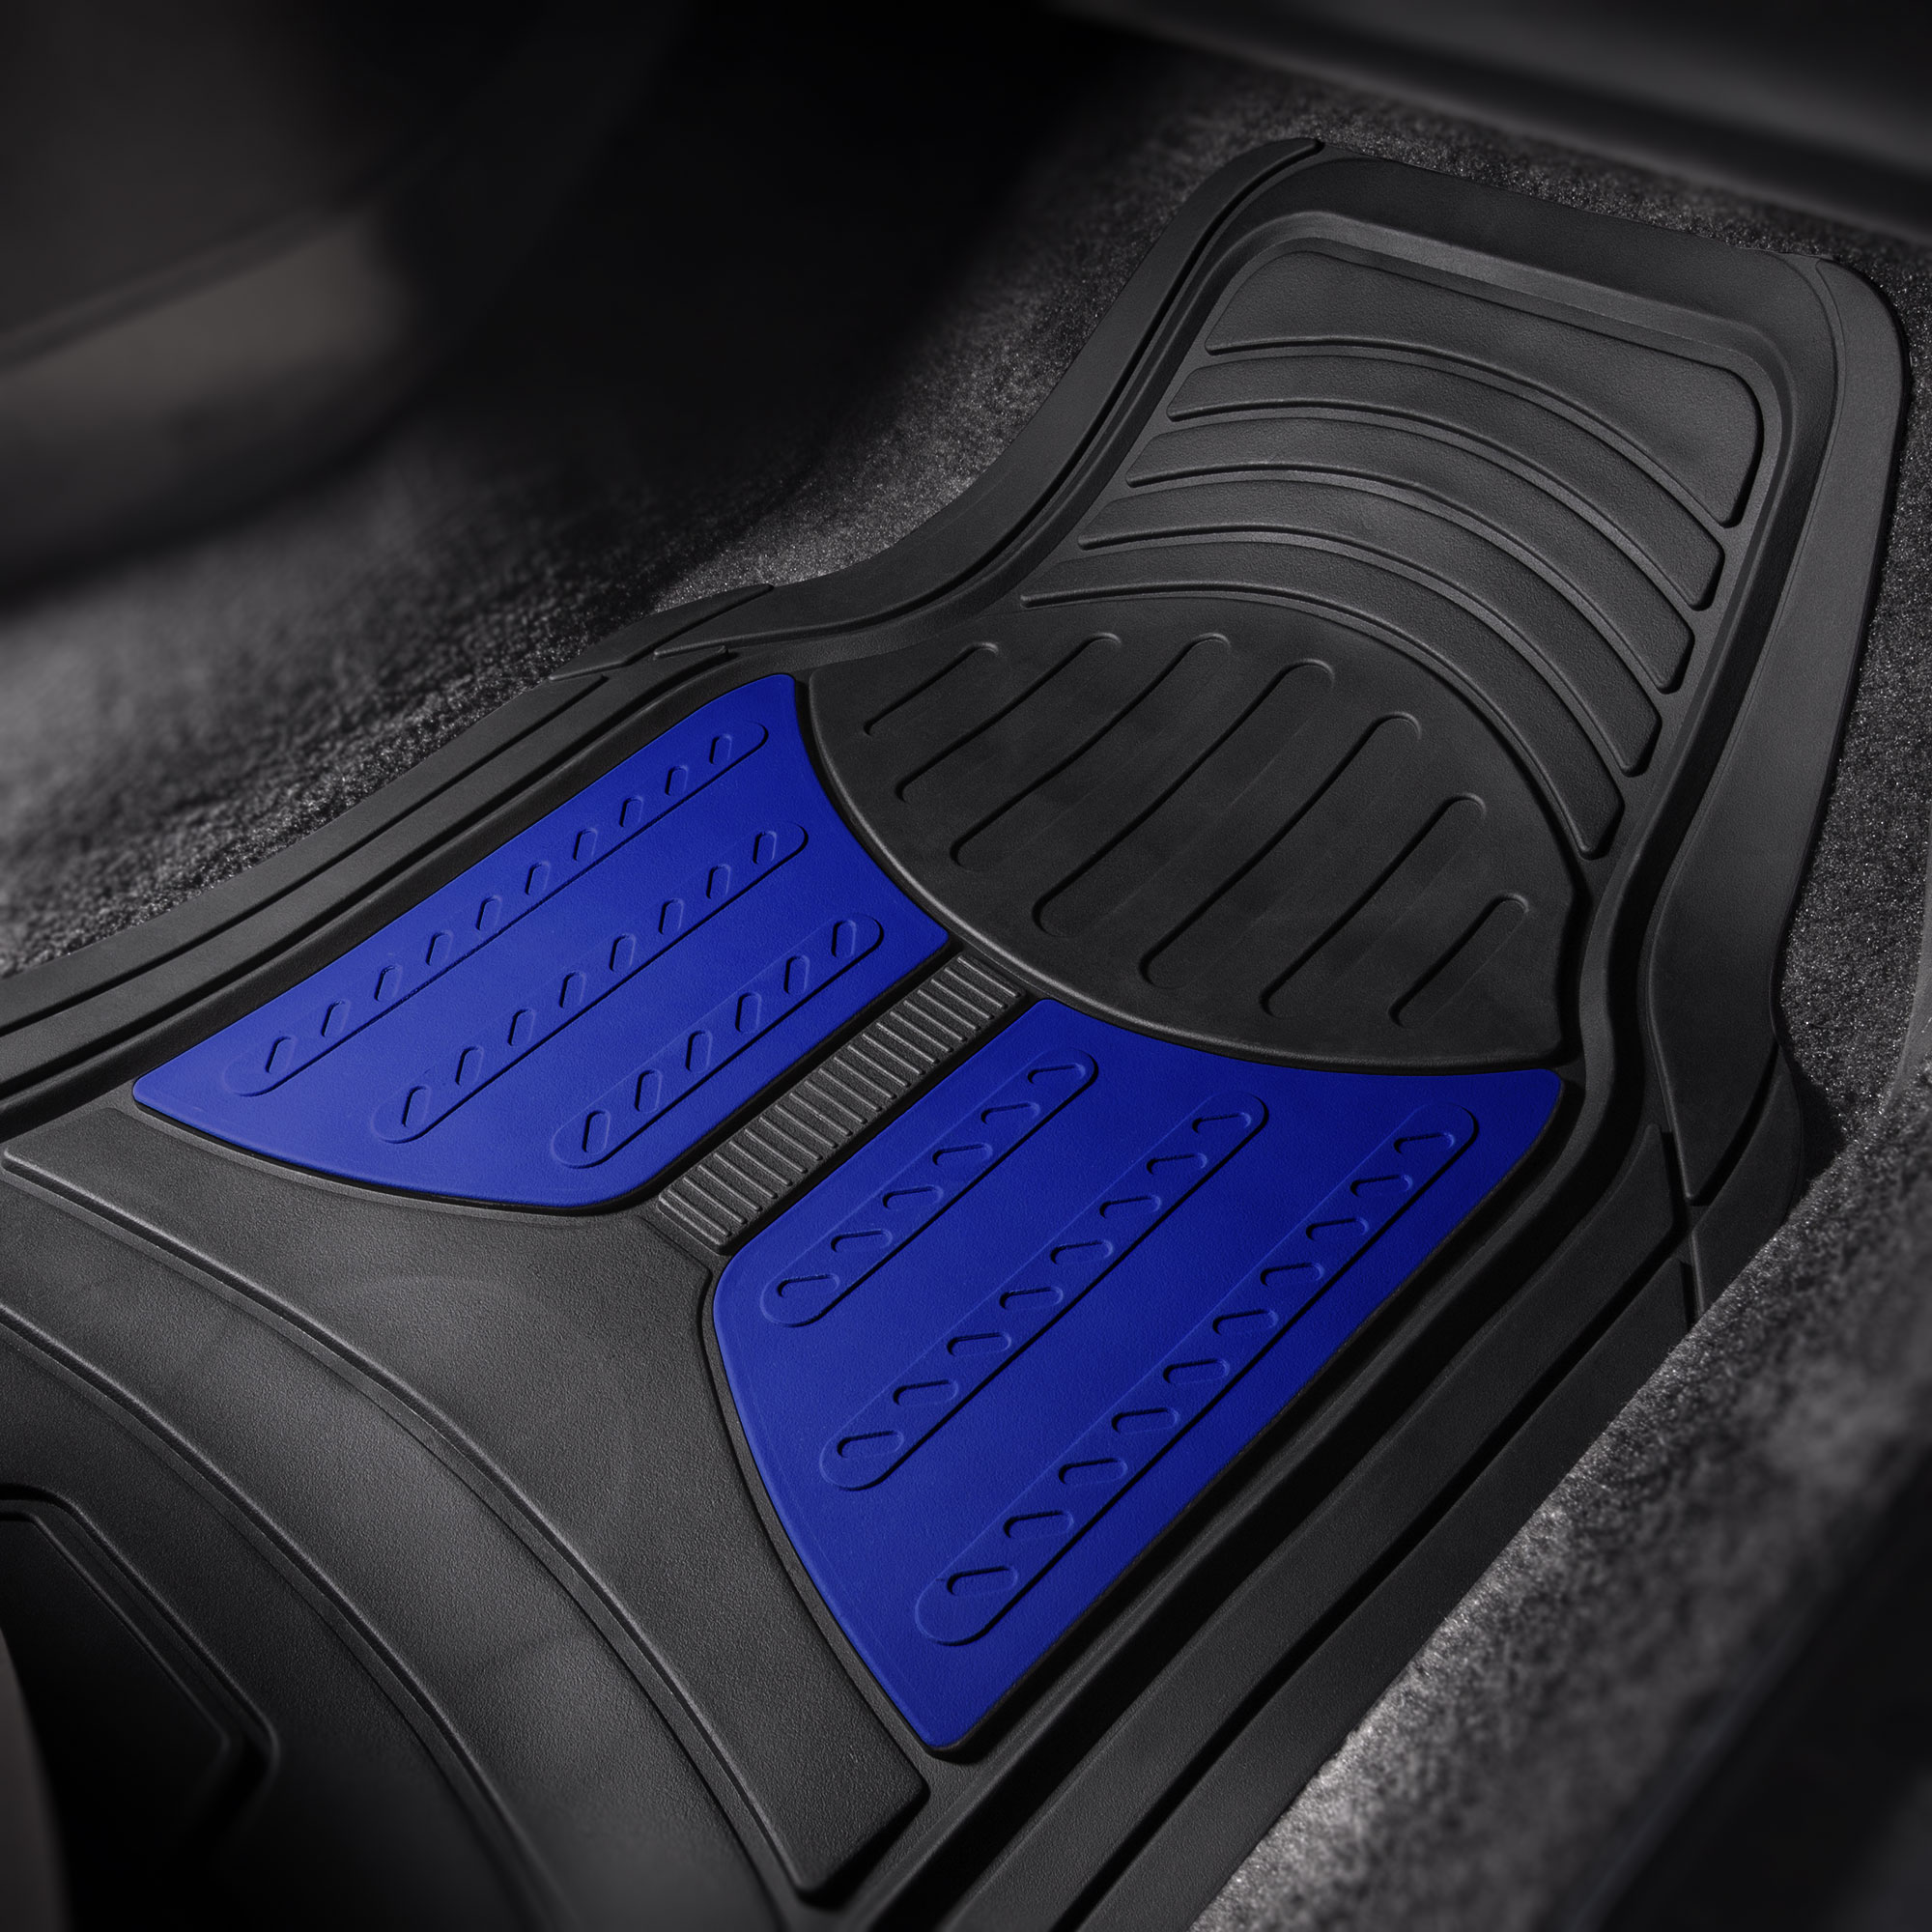 Car-Floor-Mats-for-All-Weather-Rubber-2-Tone-Design-4pc-Set-Heavy-Duty thumbnail 15